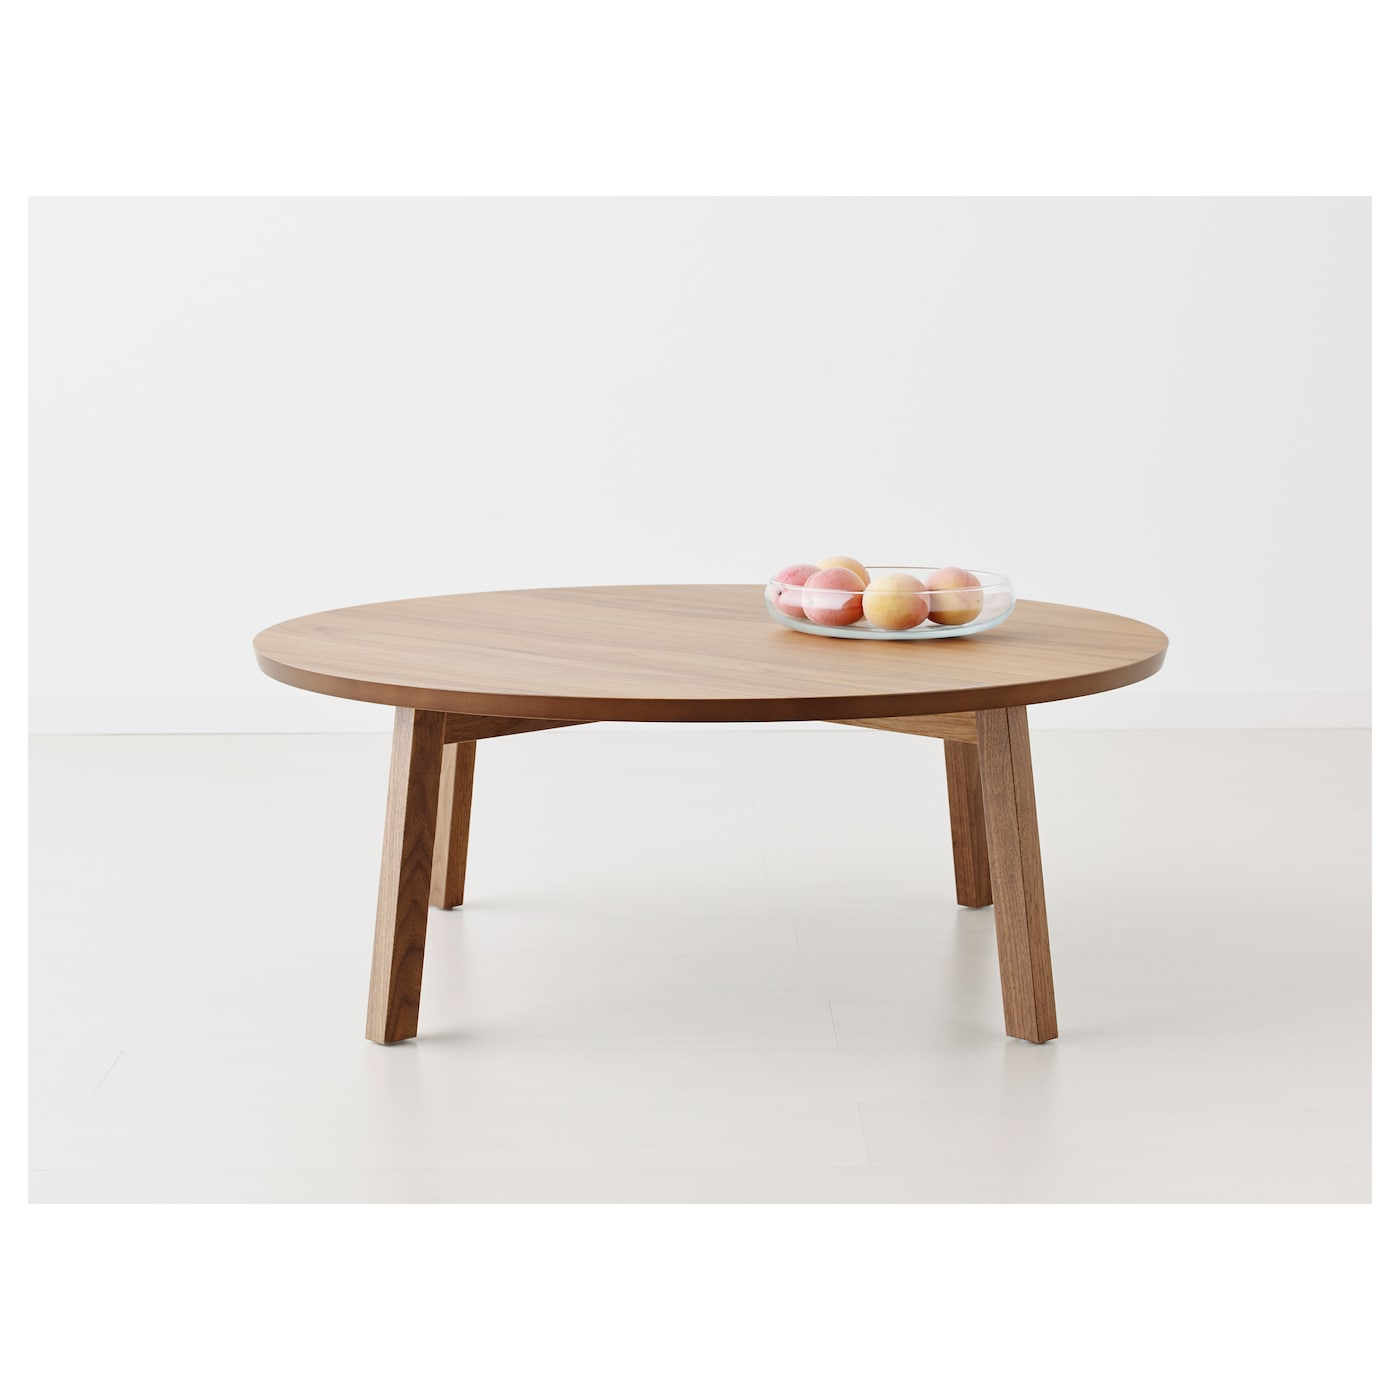 Stockholm coffee table walnut veneer 93 cm ikea - Table basse transformable en table haute ikea ...